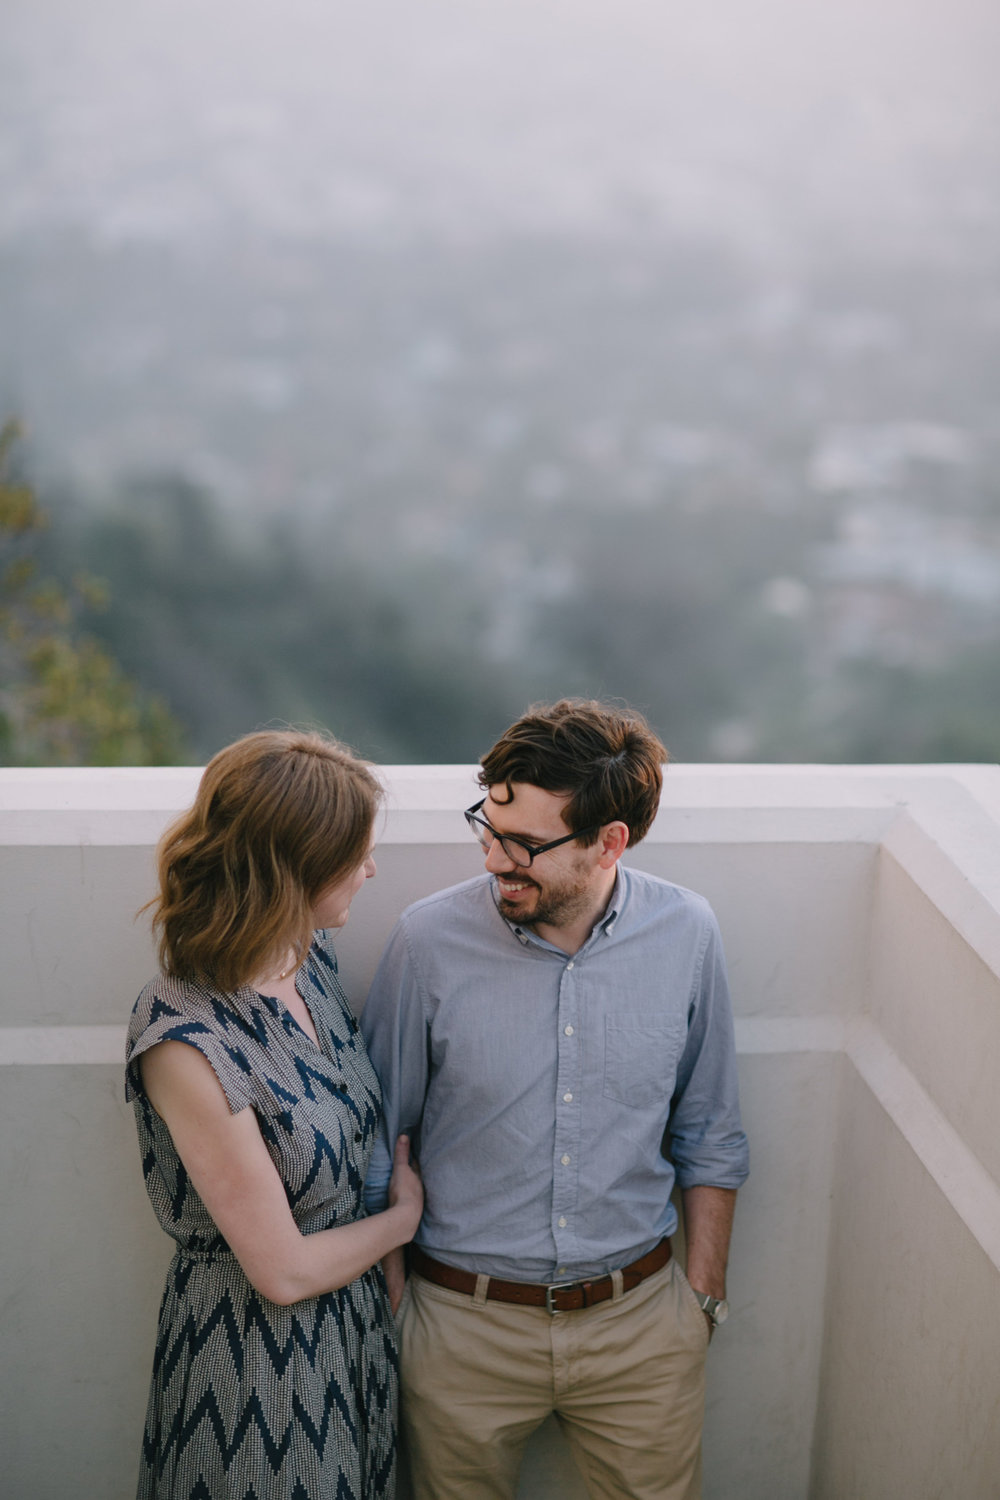 Griffith Park Observatory and Trails Cafe Los Angeles Engagement Session - Alison and Andrew-013.jpg